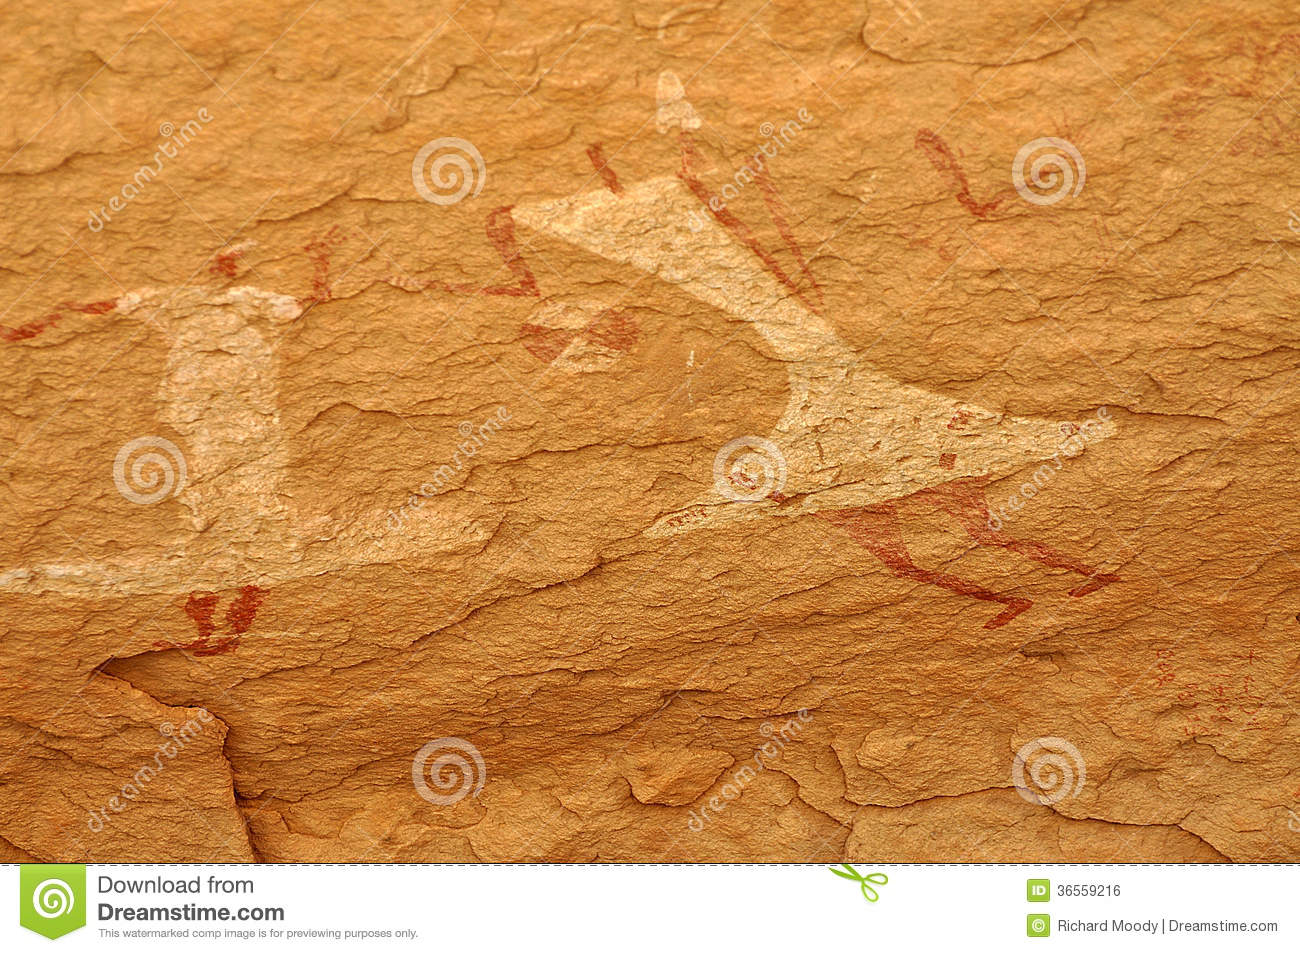 Cave Painting of Dancers